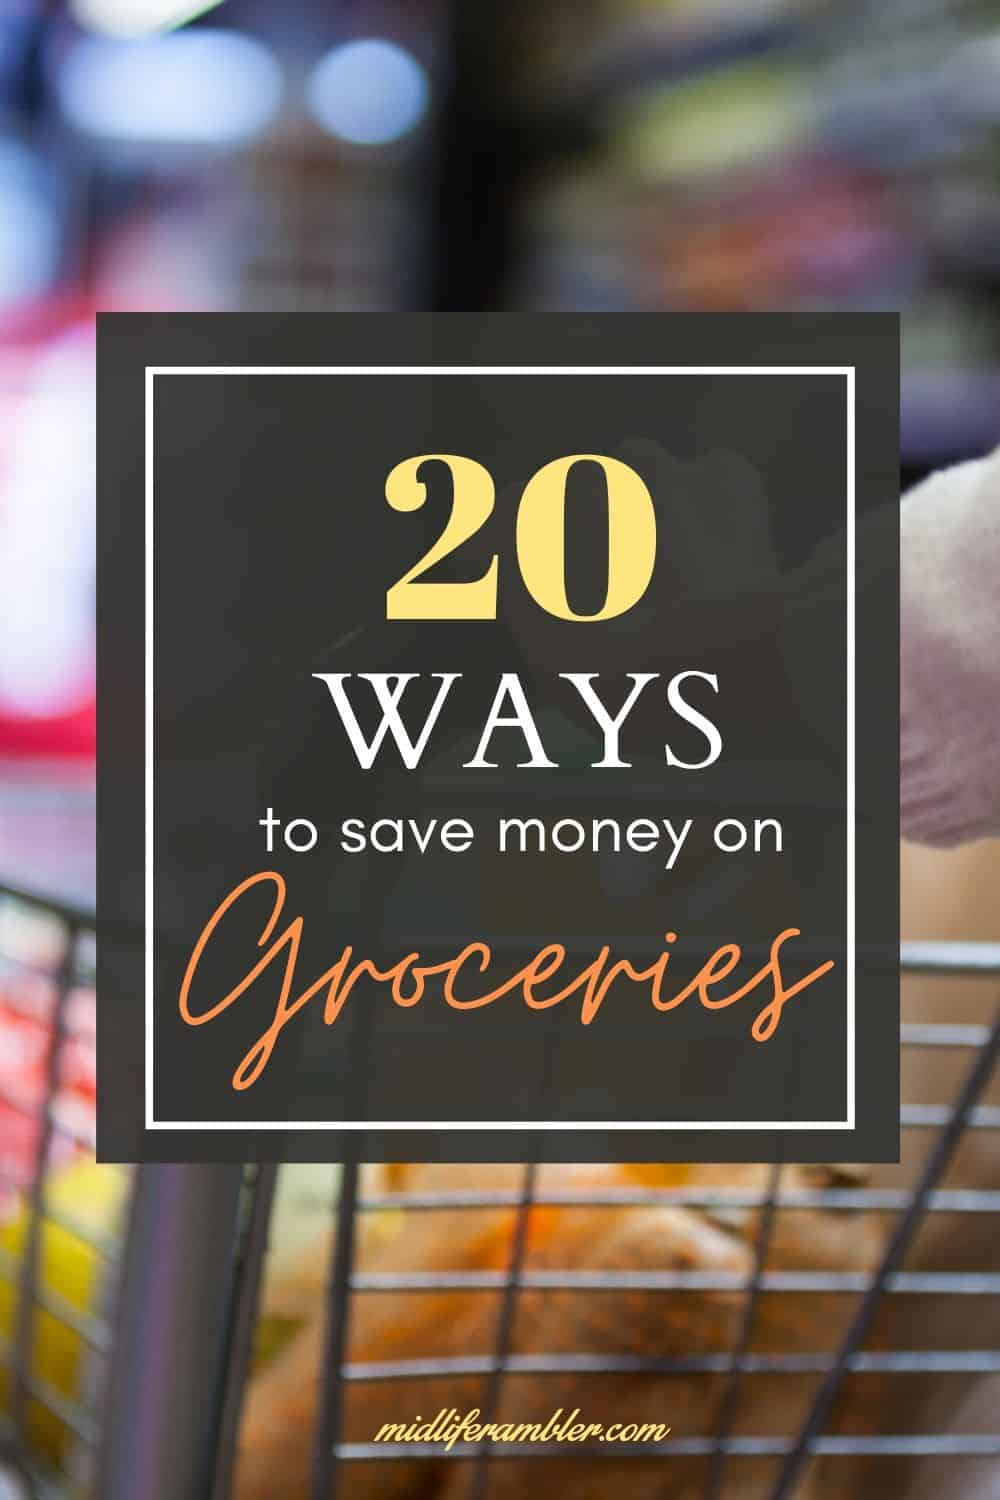 20 Easy Ways to Save Money on Groceries 11